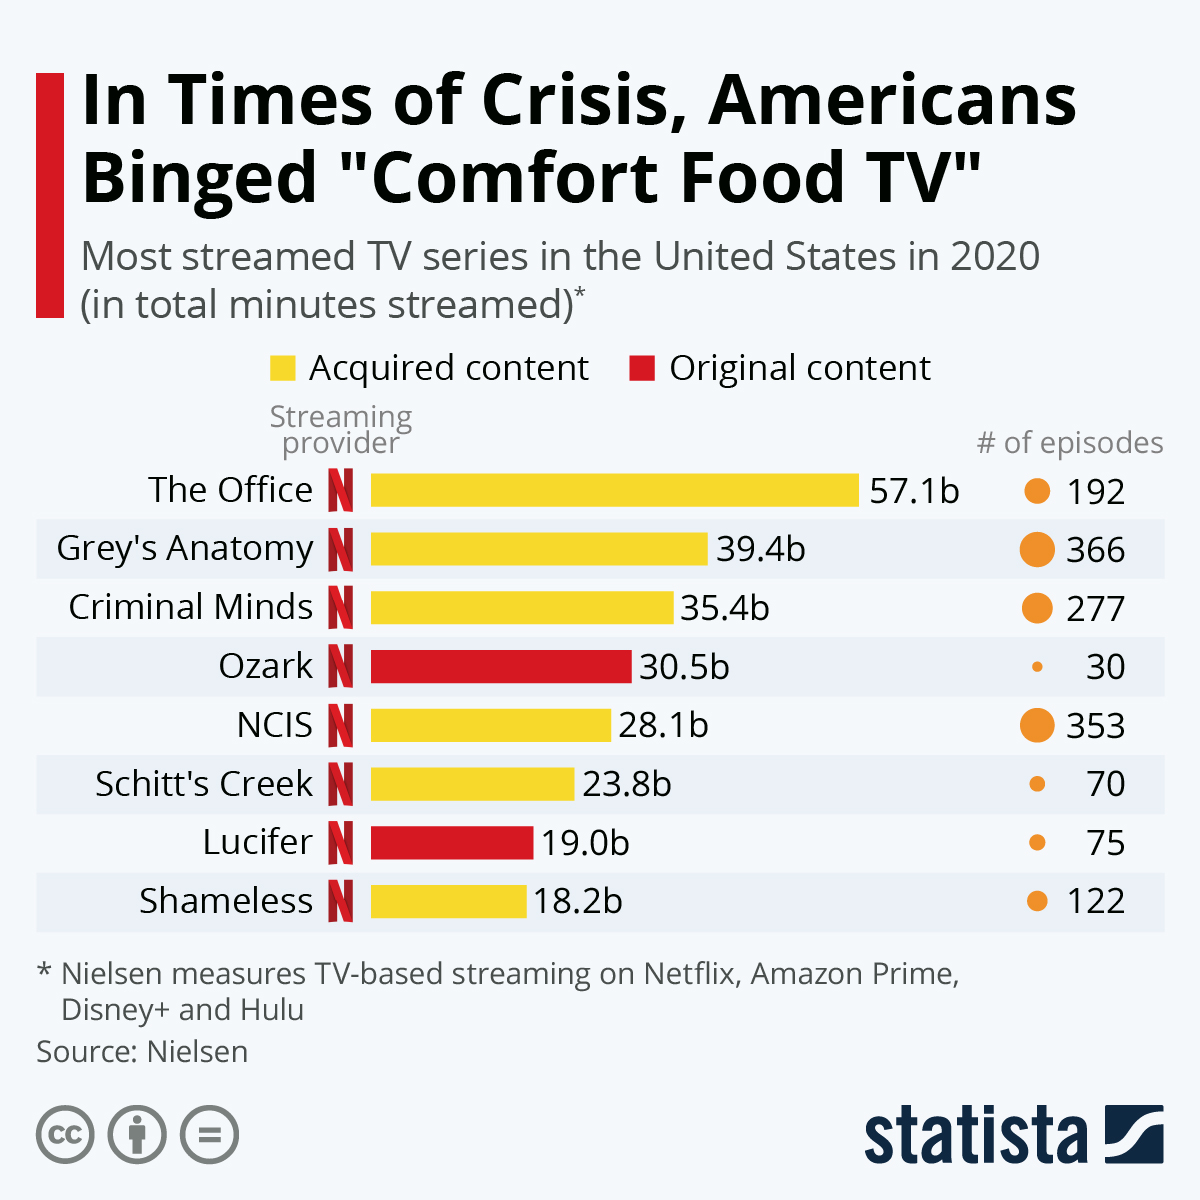 """Infographic: In Times of Crisis, Americans Binged """"Comfort Food TV"""" 